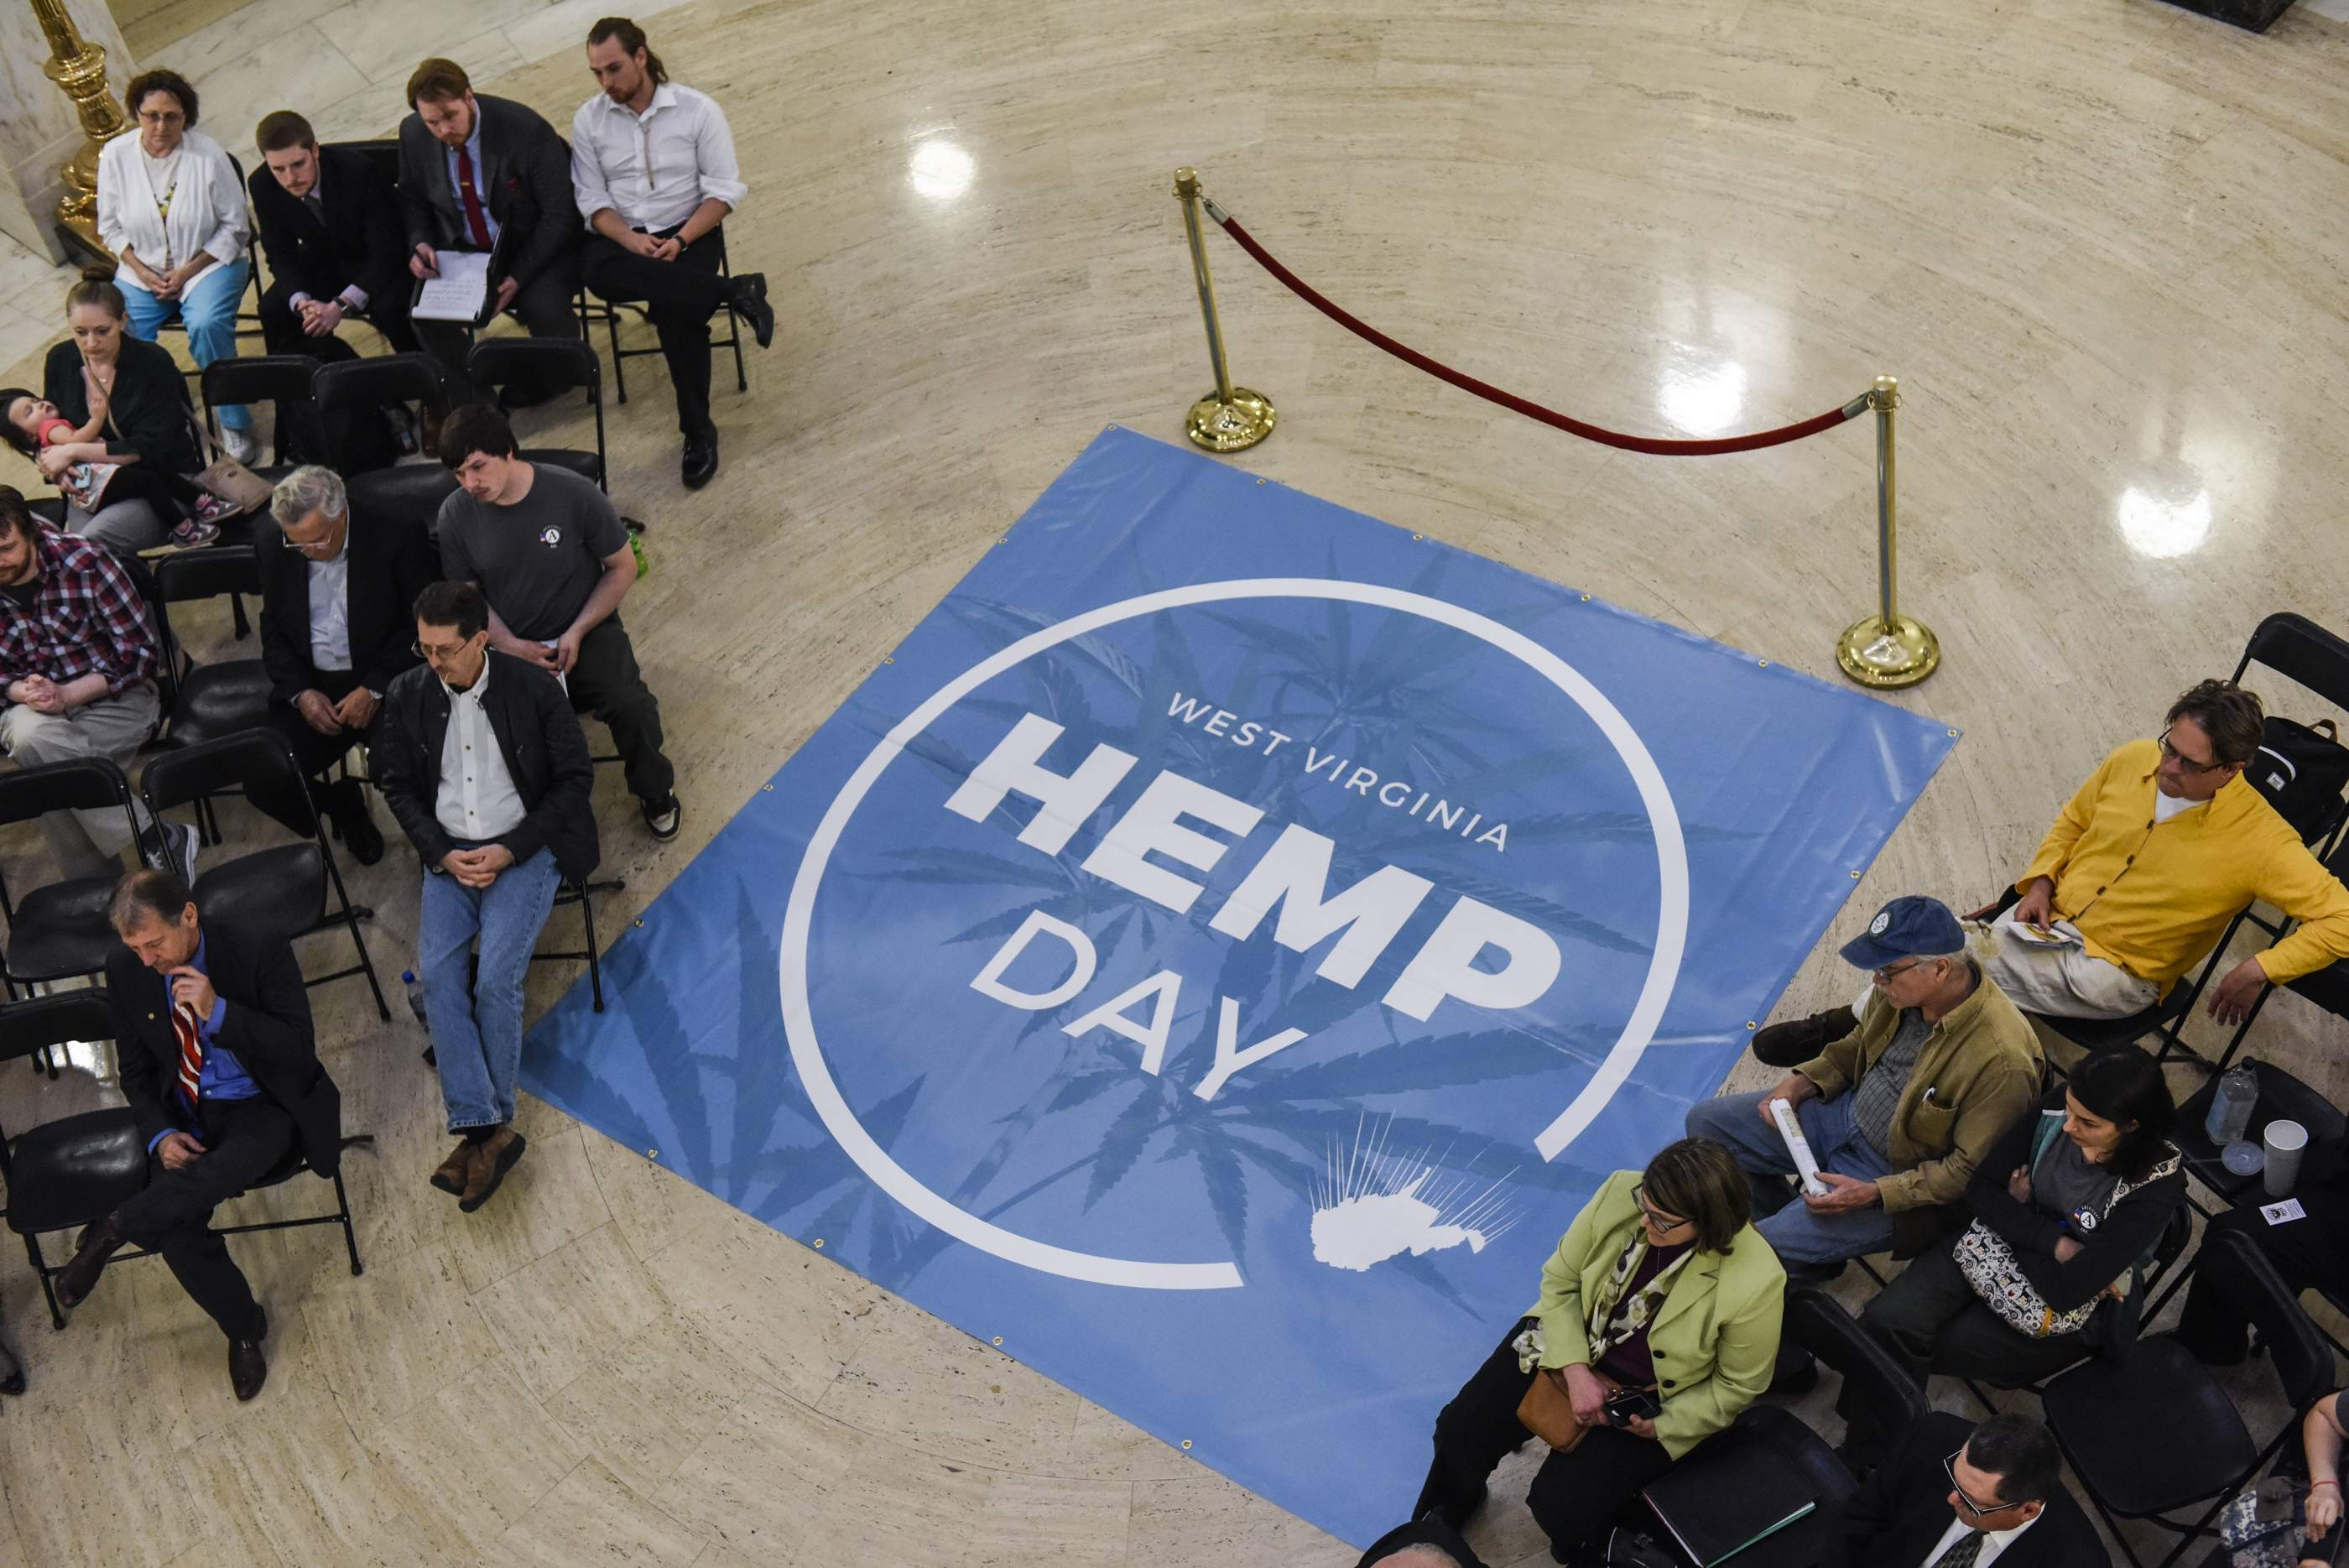 PHOTOS: Hemp Day at Capitol Aims to Grow Support for Versatile Plant